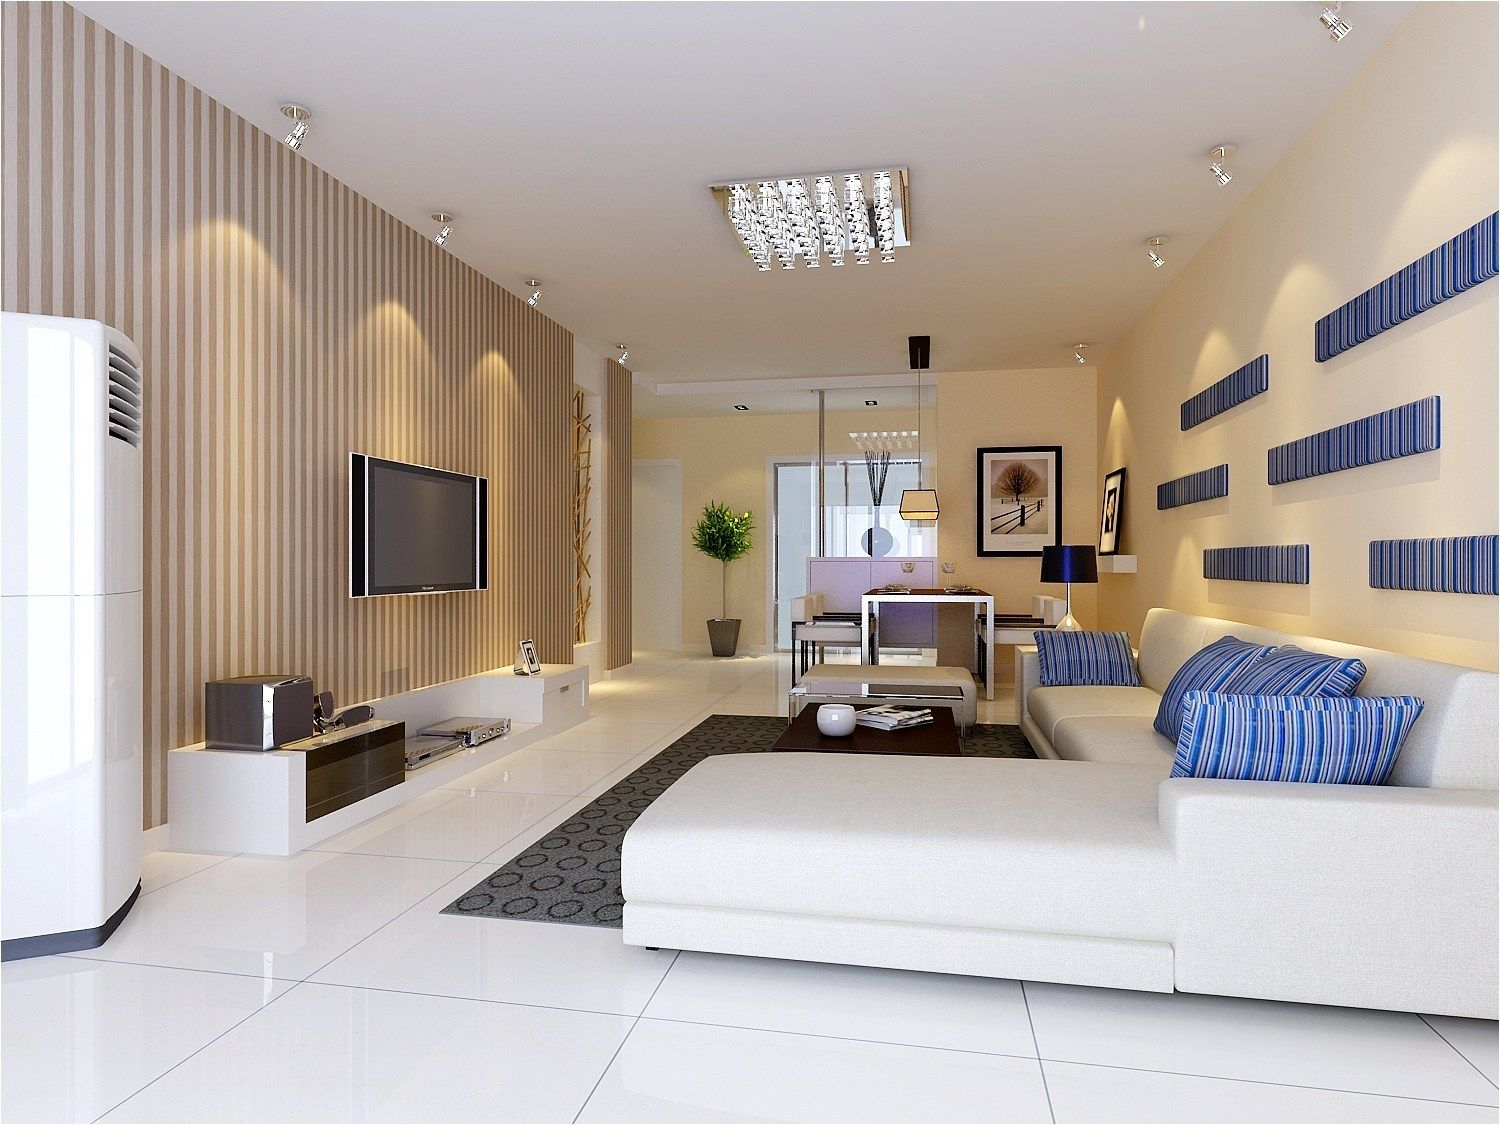 40 Stunning And Clean White Marble Floor Living Room Design Decorecord White Marble Floor Luxury Marble Flooring Marble Floor